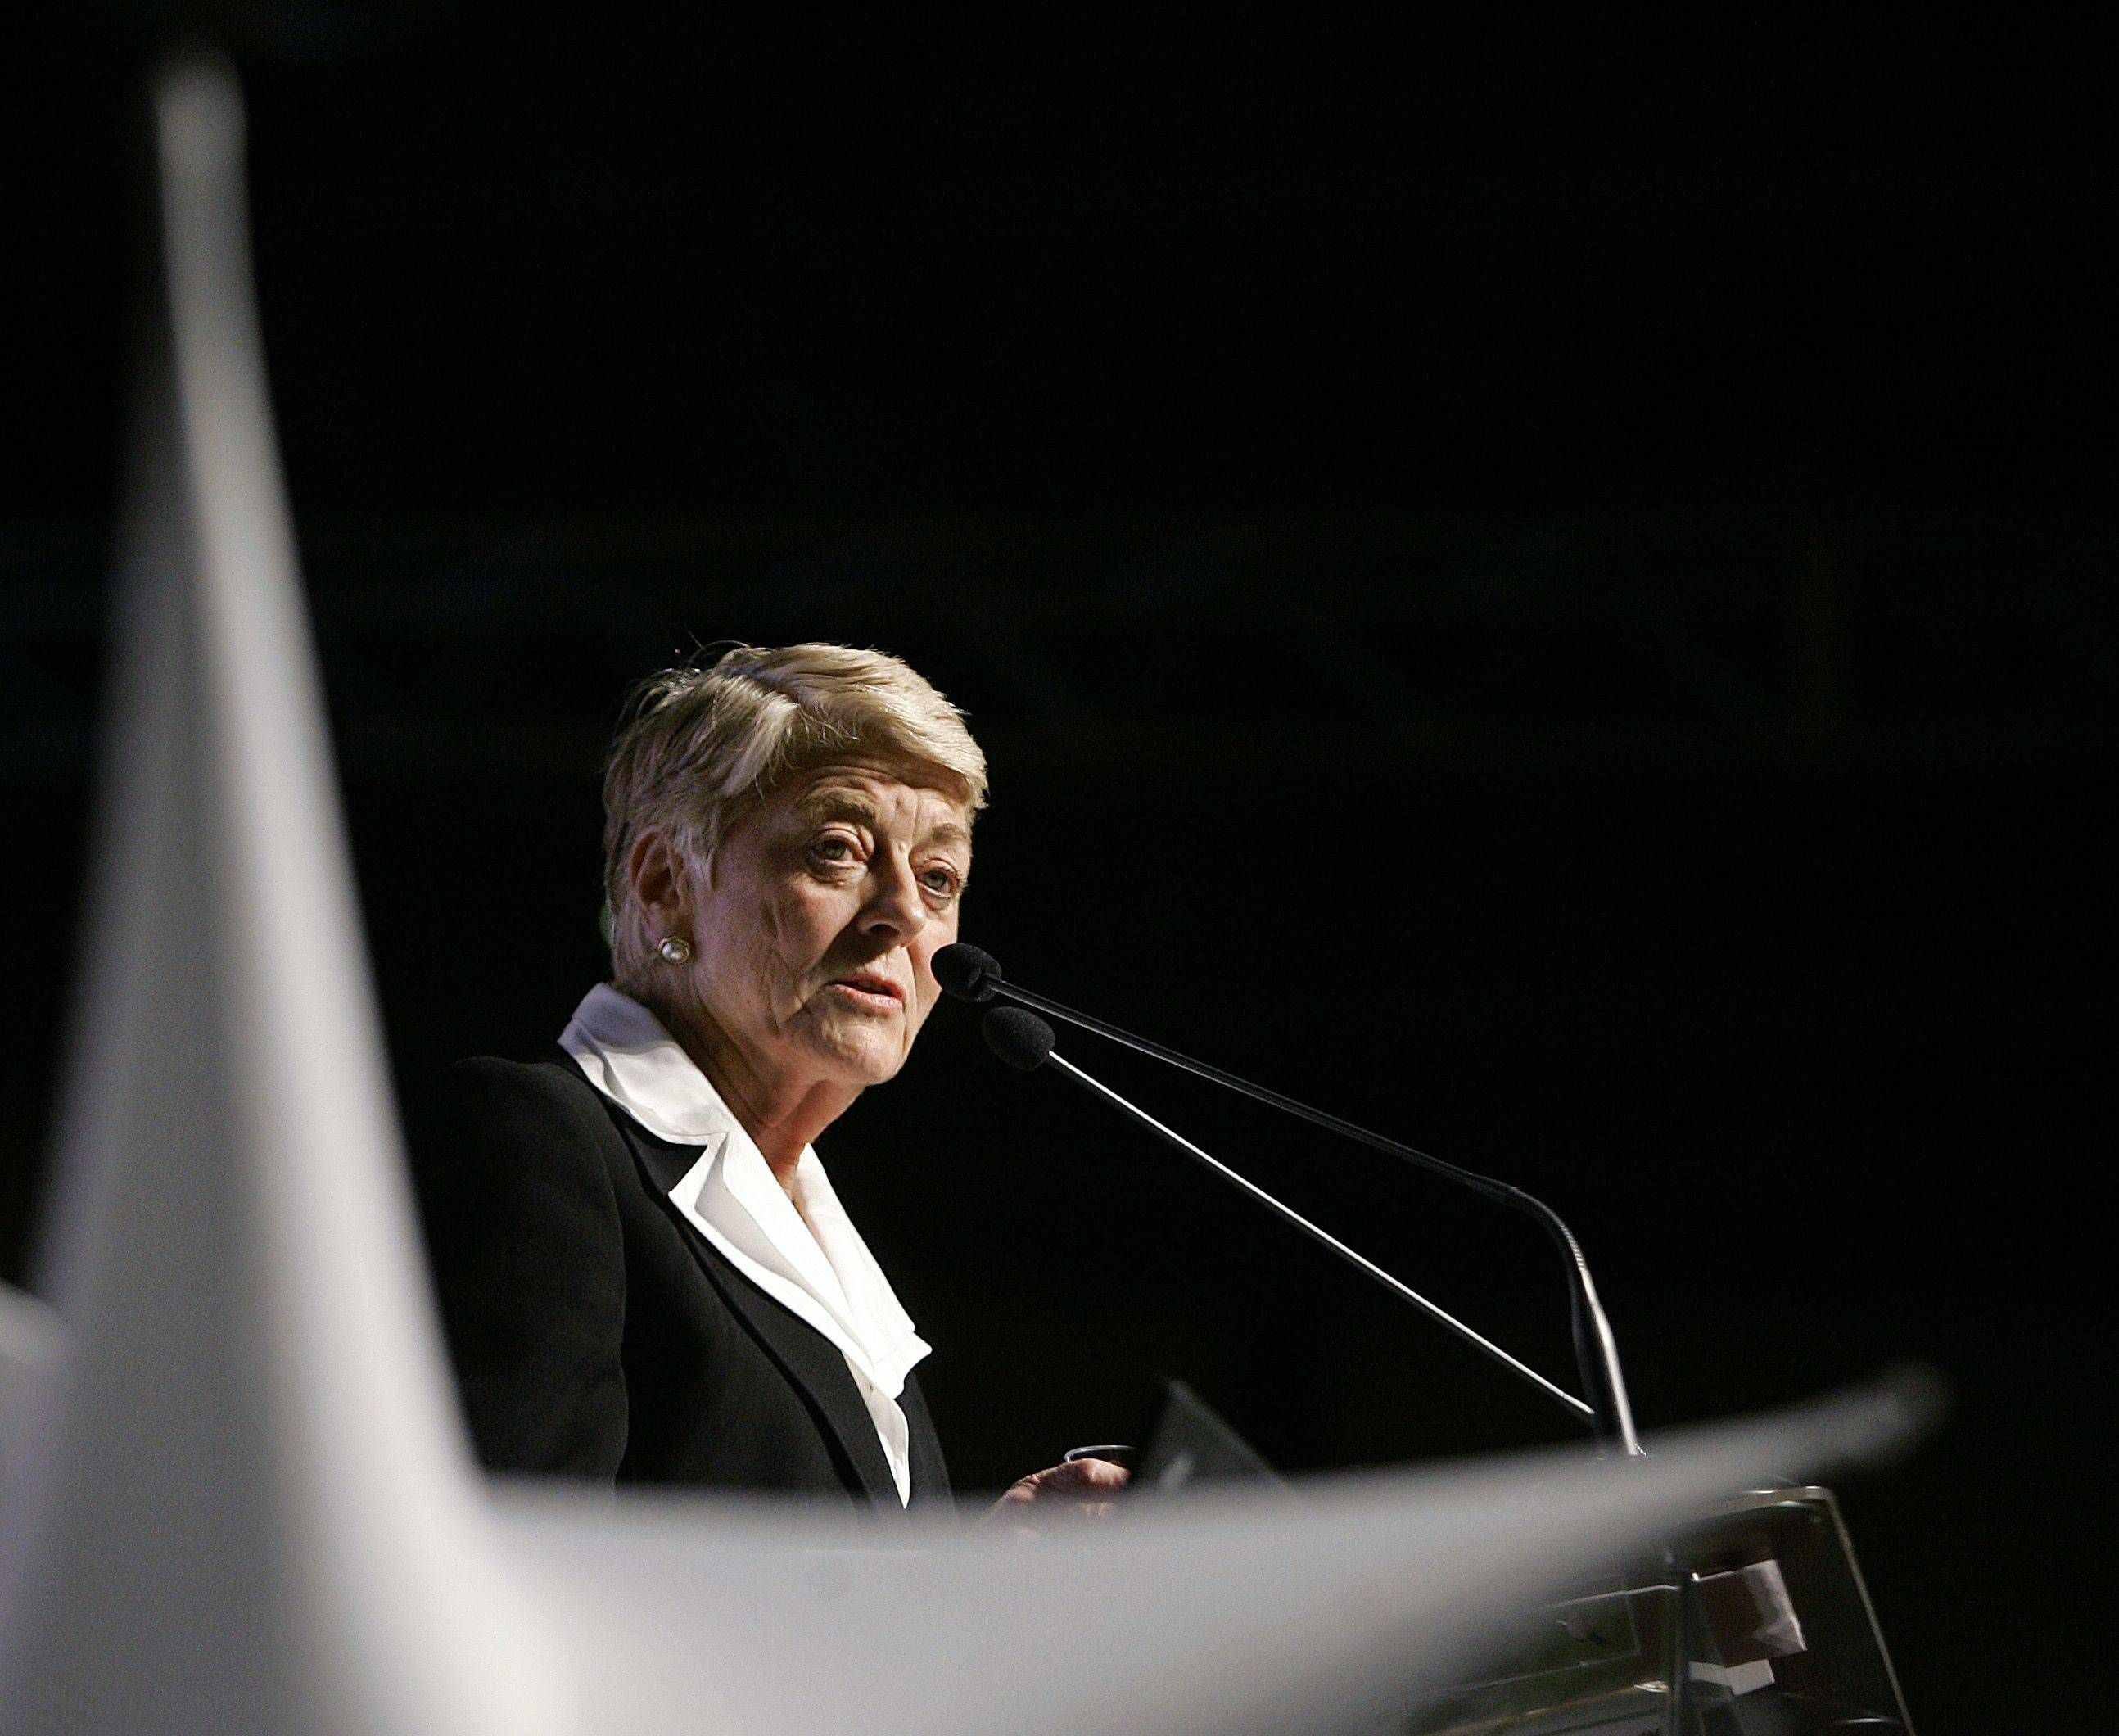 In this Thursday, March 13, 2008 file picture, former vice-presidential candidate Geraldine Ferraro address attendees at the Women's Summit 2008 on the Bryant University campus in North Smithfield, R.I. T